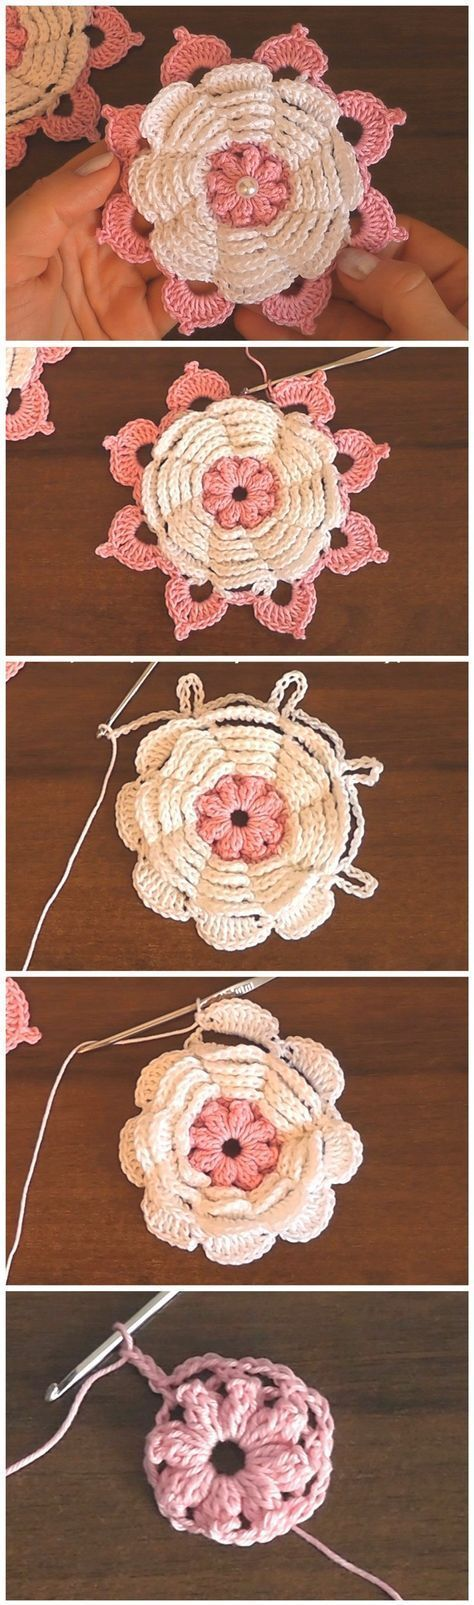 How To Make Spring Flower - Crochet Tutorial - Yarn & Hooks#crochet #flower #hooks #spring #tutorial #yarn #crochetedflowers How To Make Spring Flower - Crochet Tutorial - Yarn & Hooks#crochet #flower #hooks #spring #tutorial #yarn #crochetedflowers